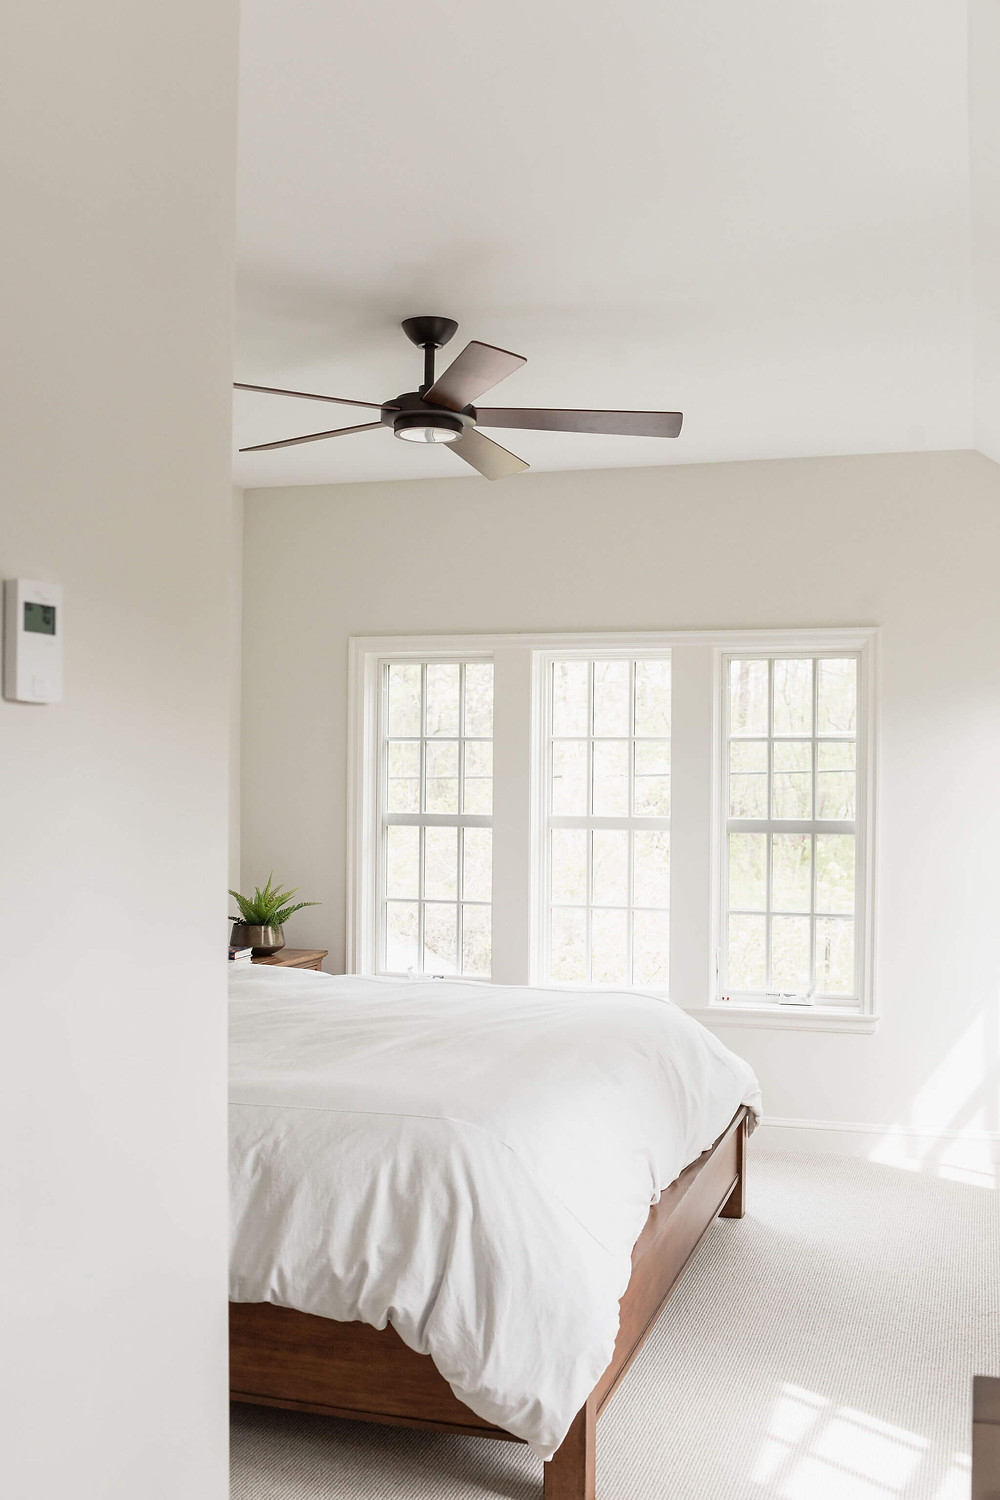 Light and bright primary owner's bedroom with large windows and modern farmhouse ceiling fan